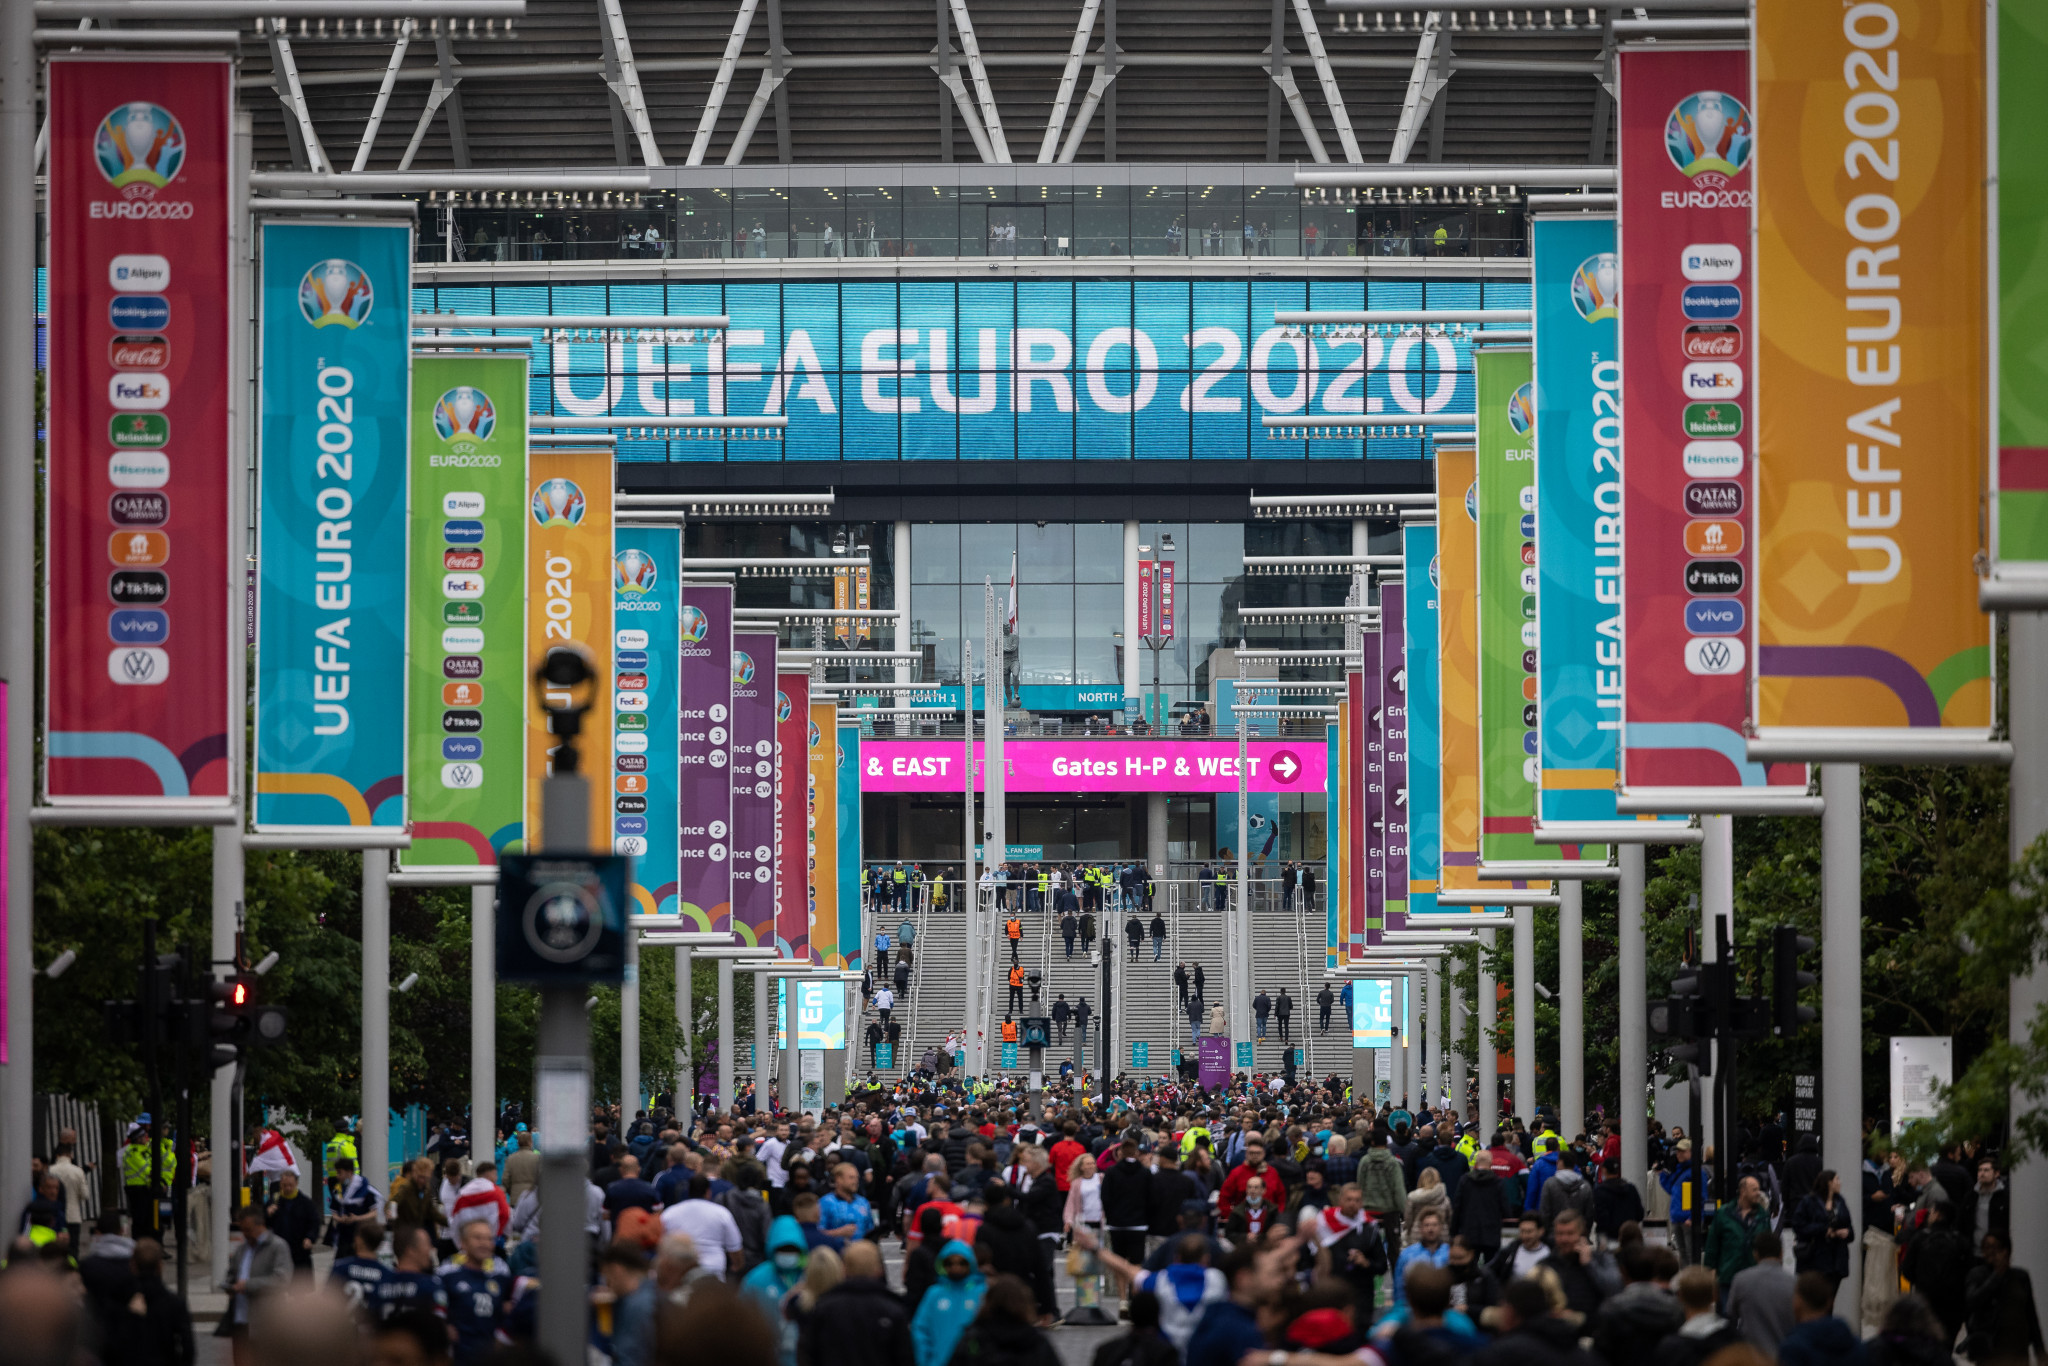 Wembley to be allowed at least 60,000 fans for Euro 2020 semi-finals and final